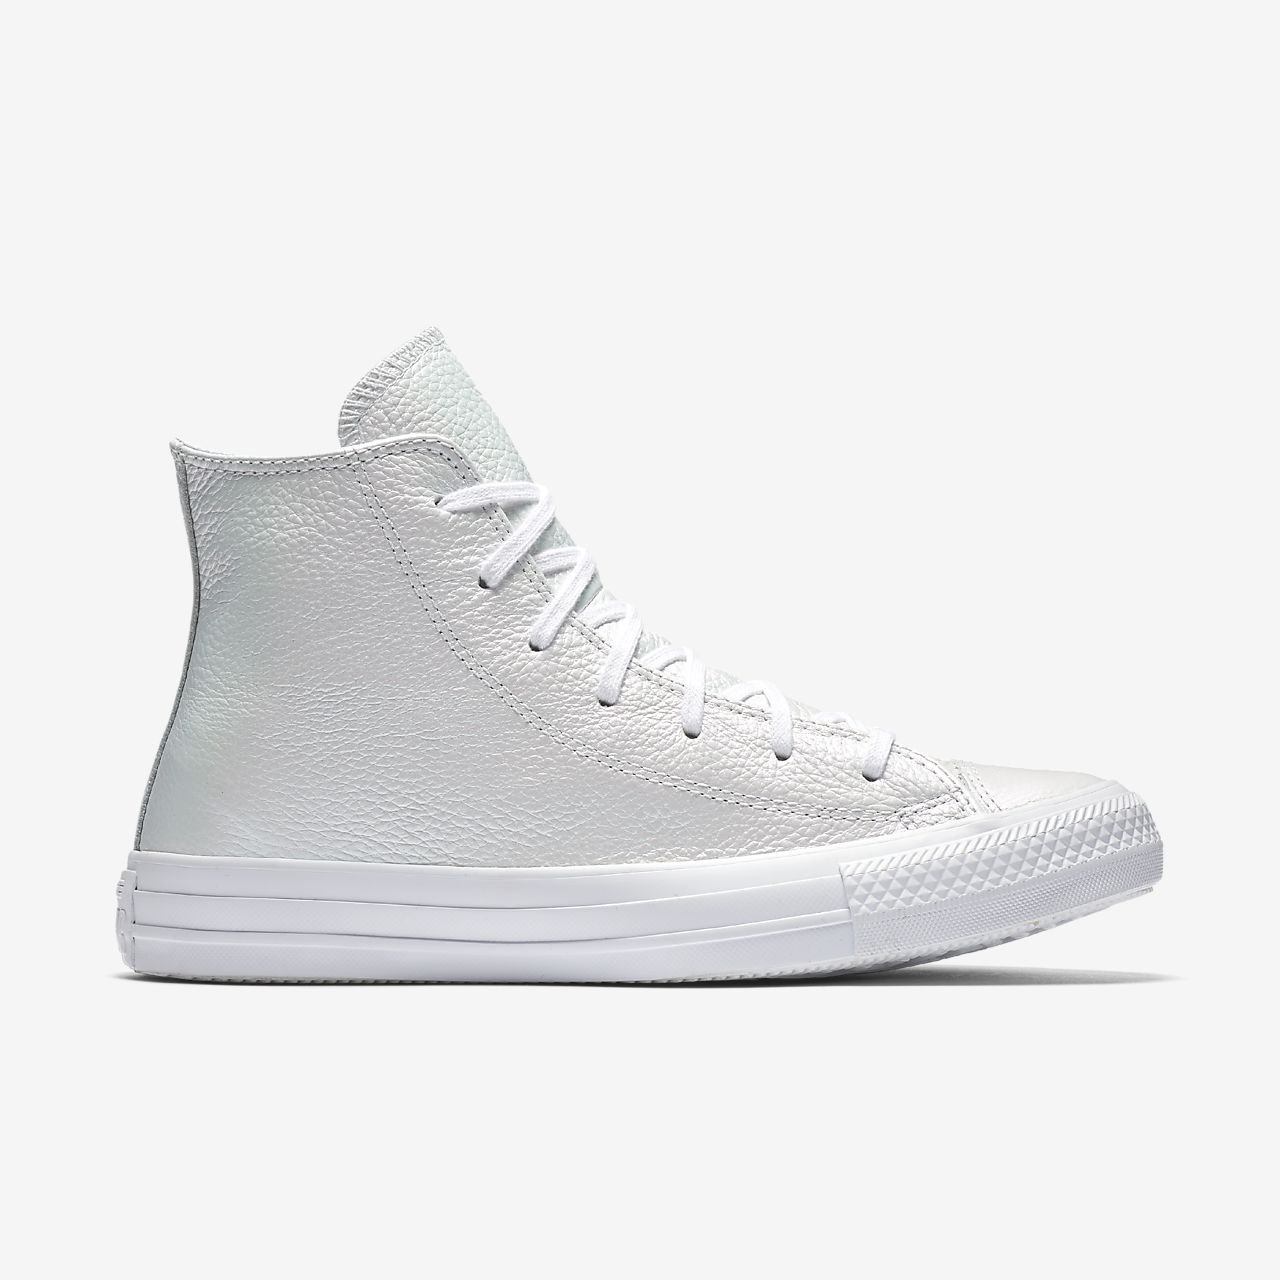 Women's Converse Chuck Taylor ... All Star Leather High Top Shoes EW3q4C